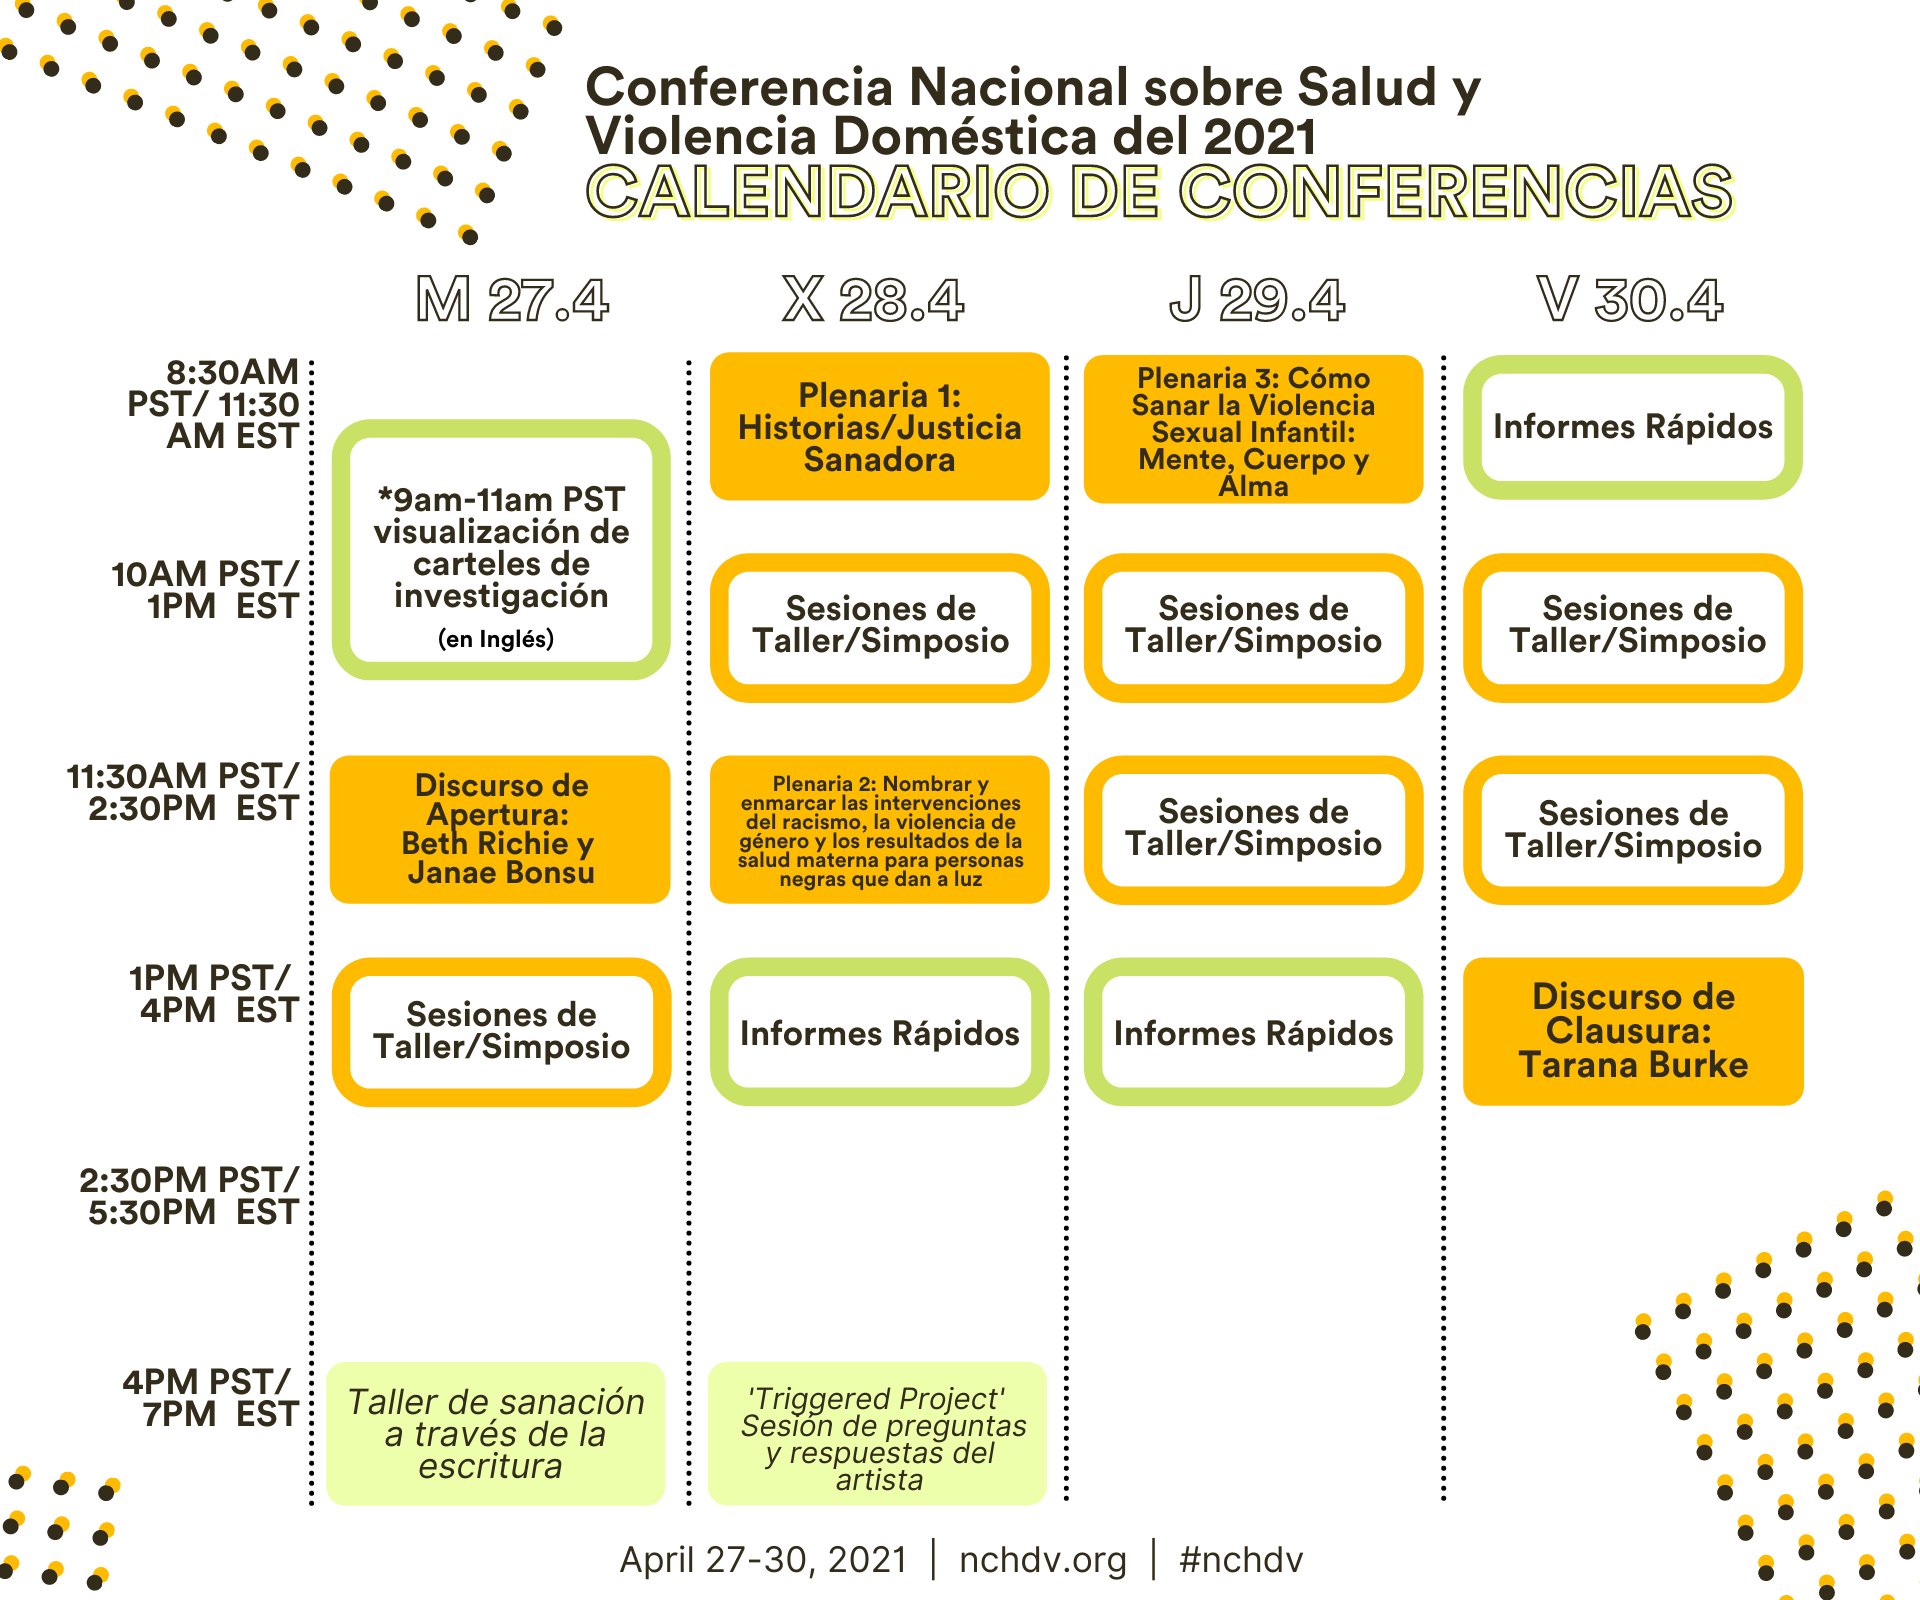 Conference schedule in Spanish. To view full schedule visit: https://nchdv.org/wp-content/uploads/2021/03/1.png